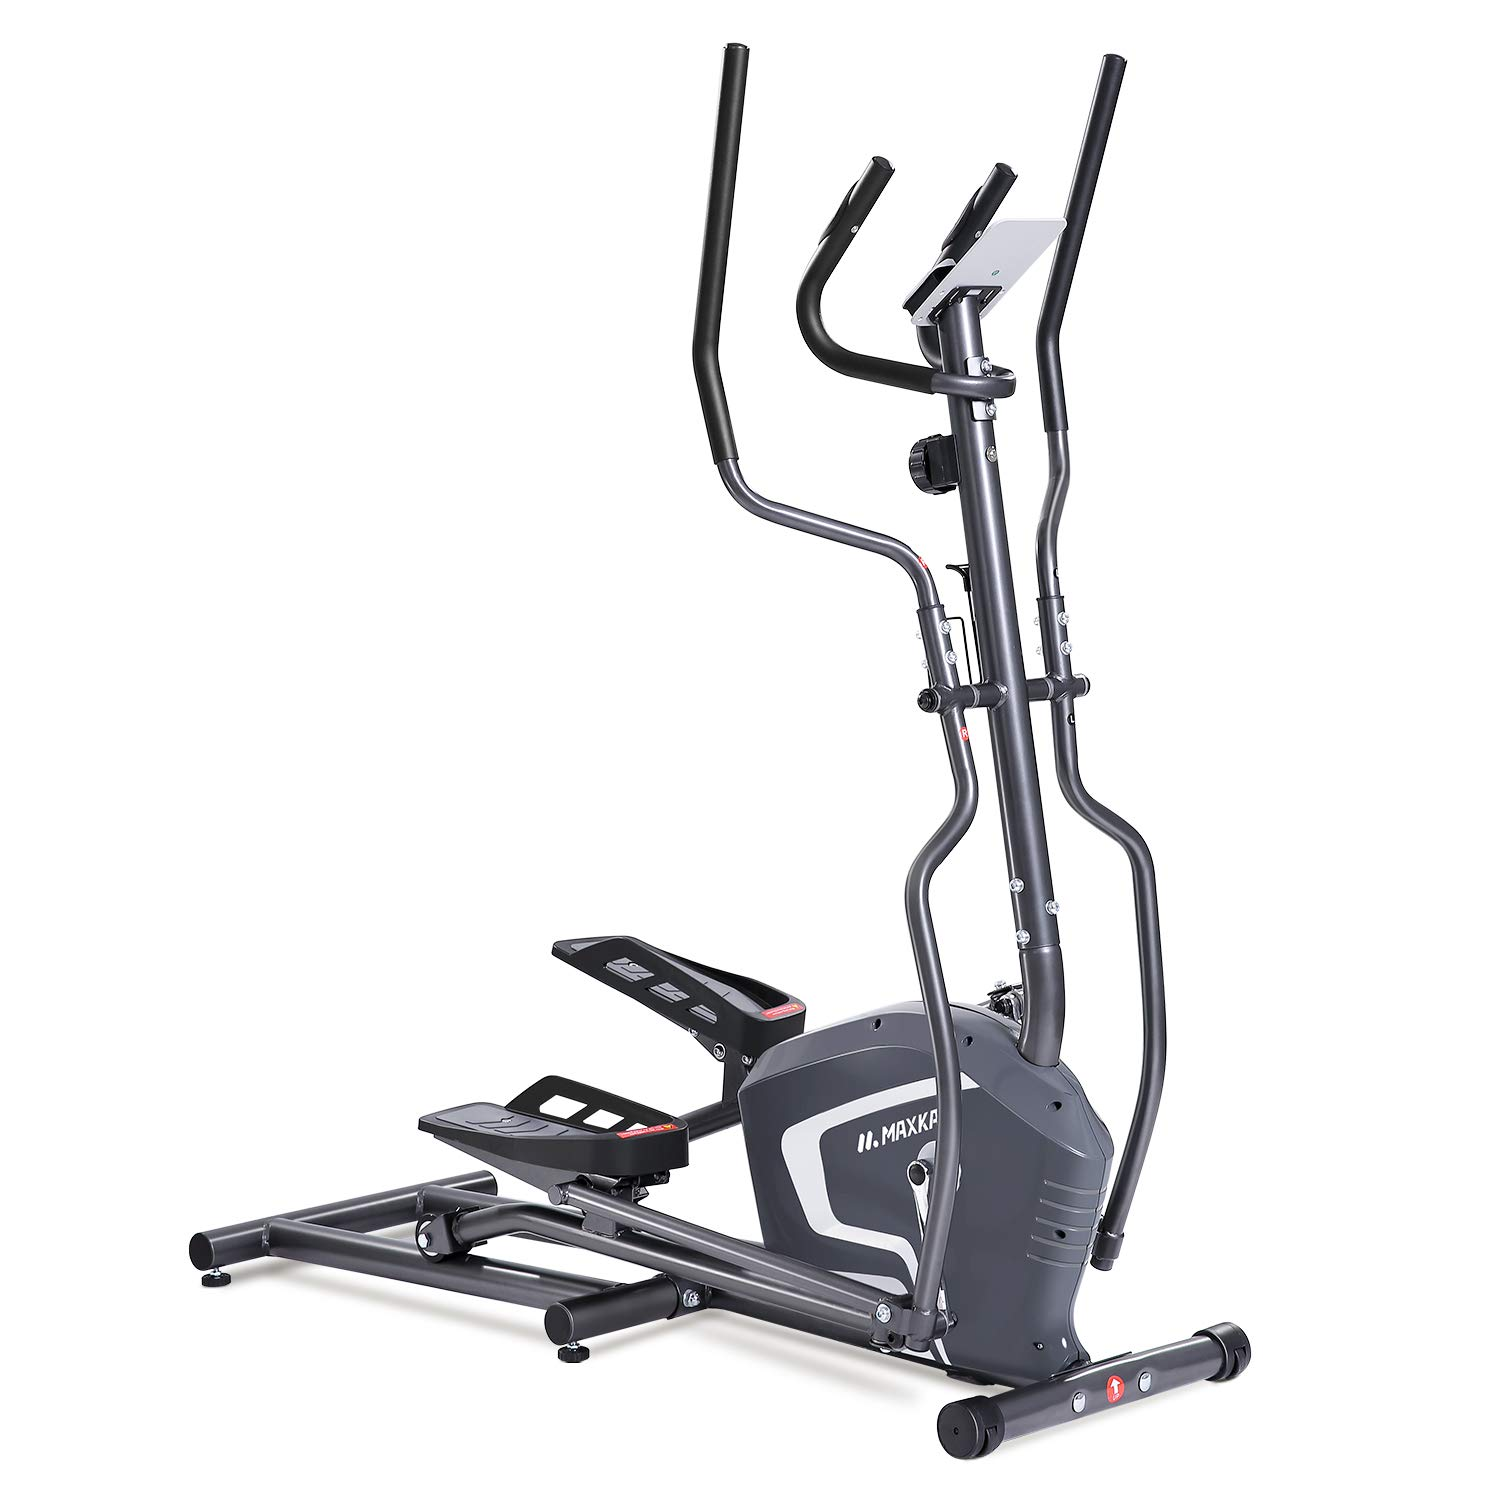 MaxKare Magnetic Elliptical Machine Trainer Smooth Quiet Driven with Front Flywheel/LCD Monitor/Dual Handles for Home Use by MaxKare